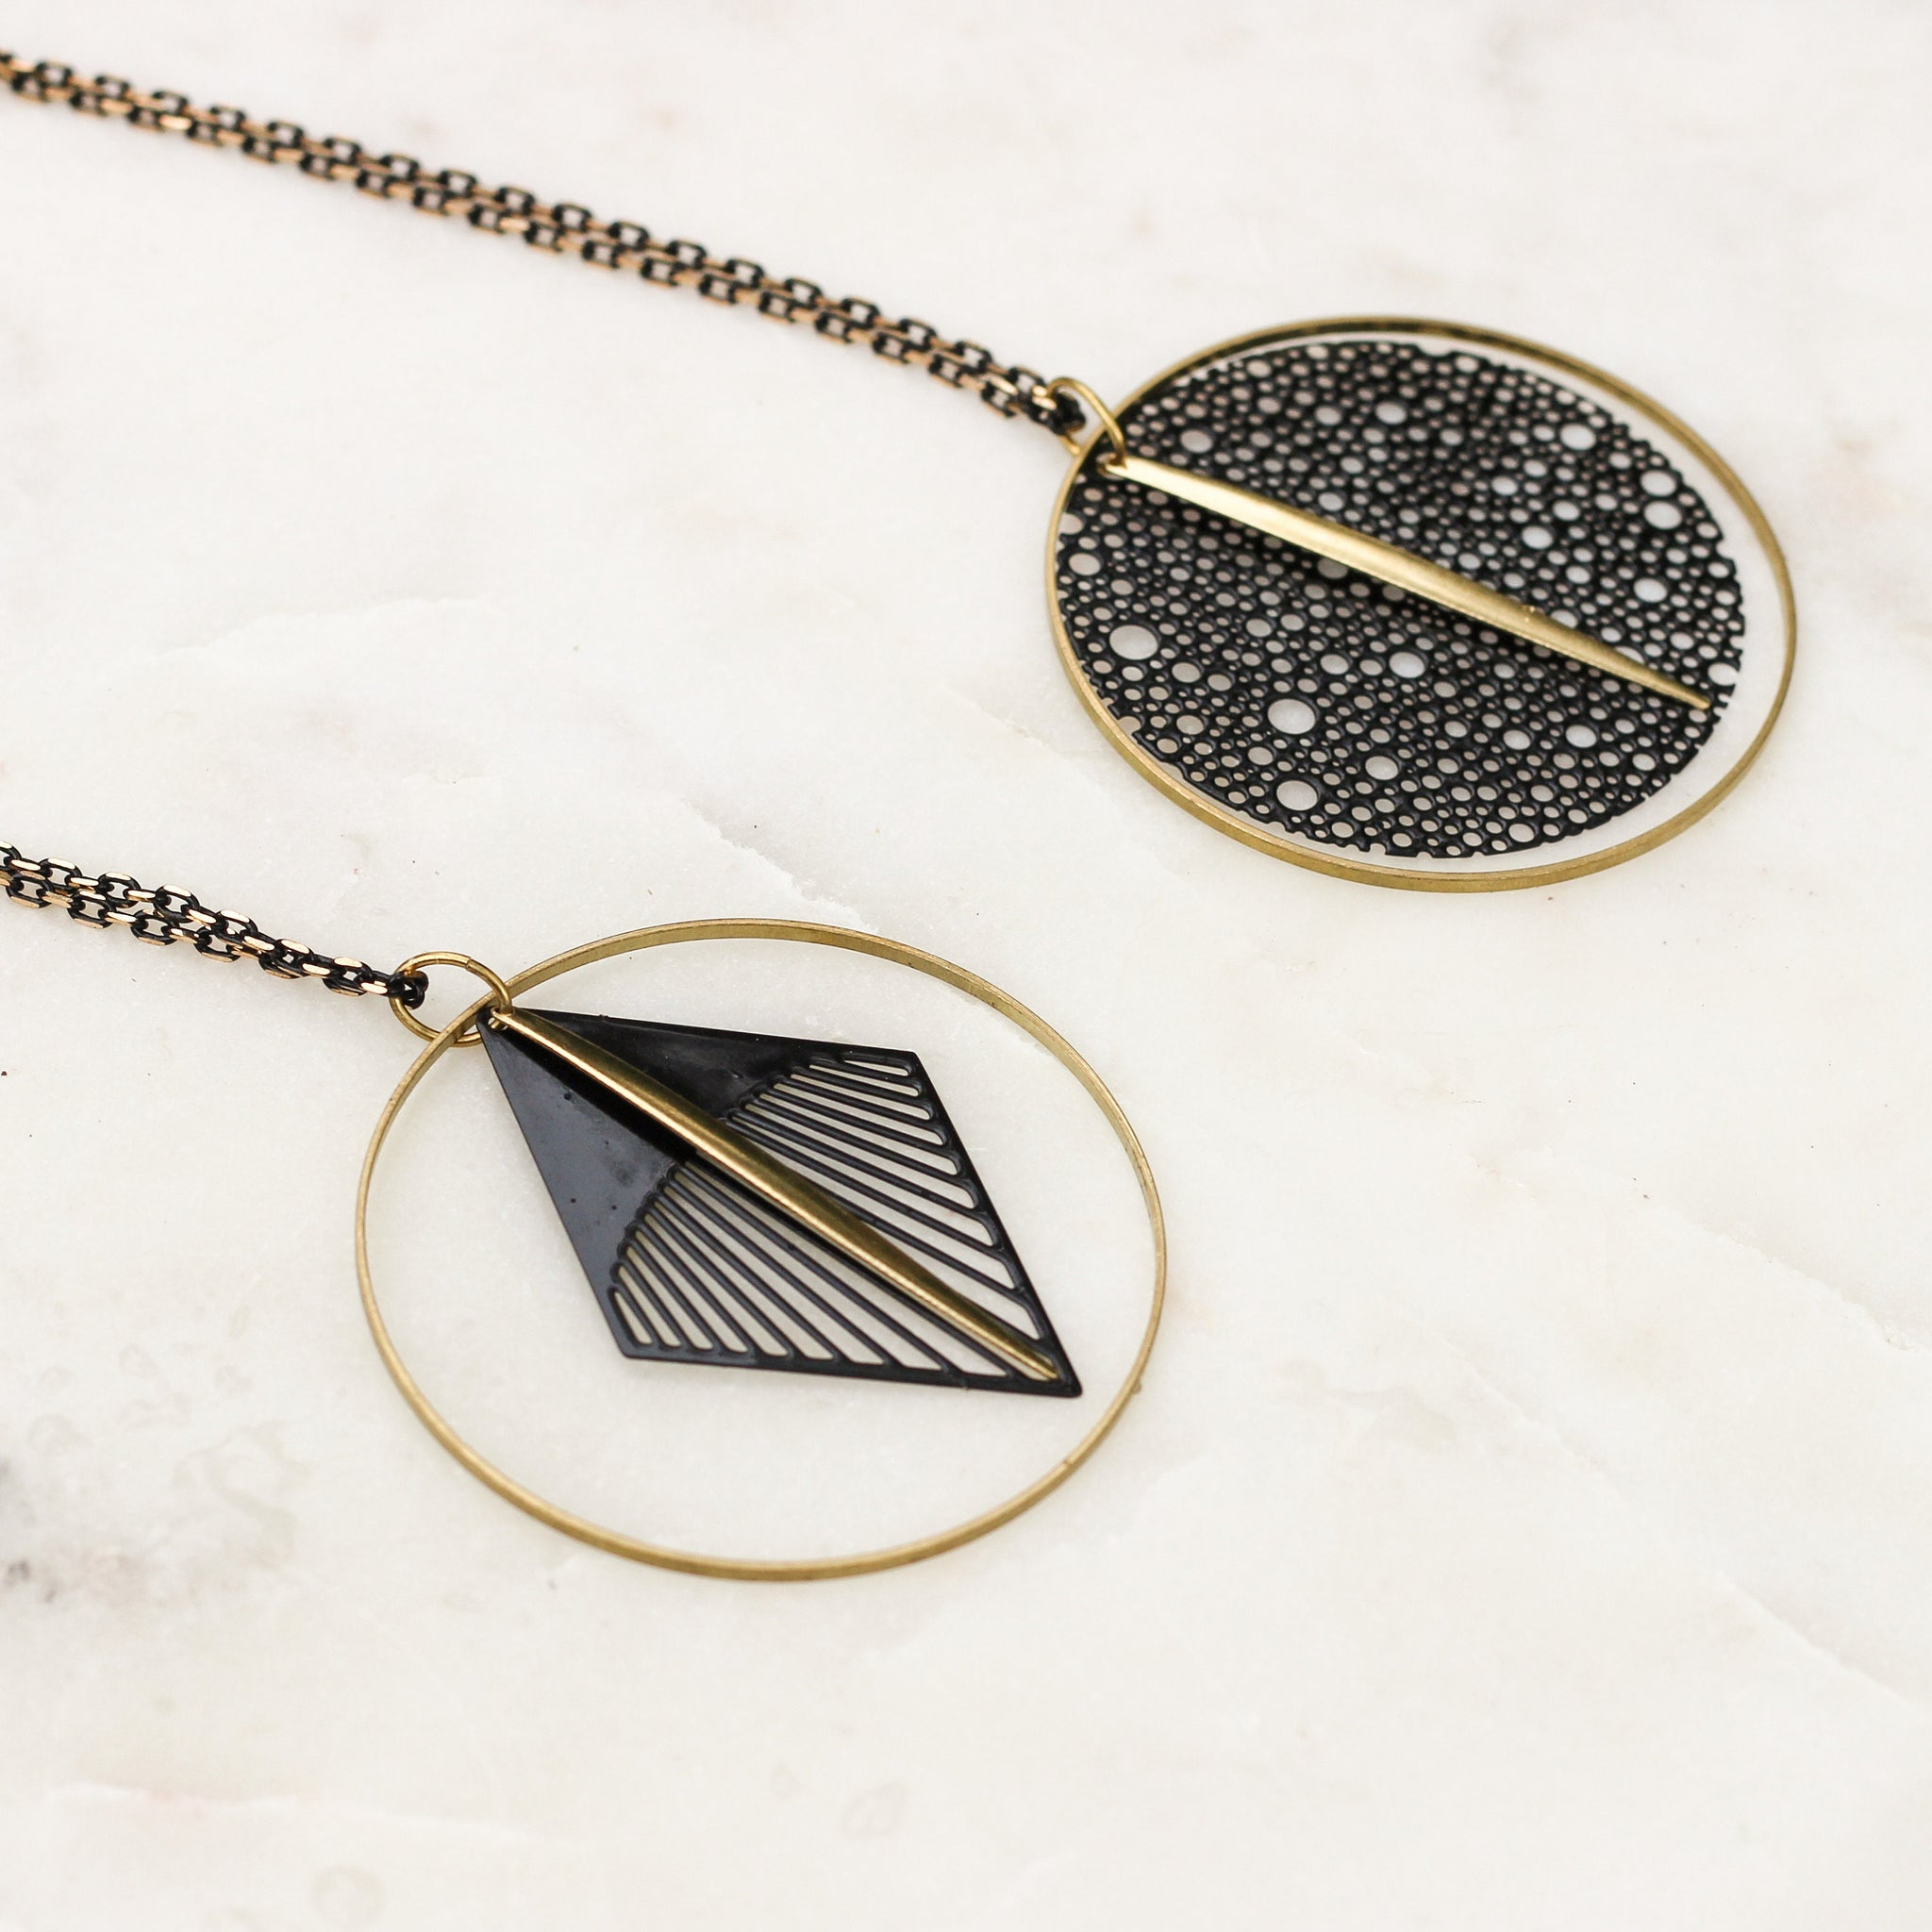 Art Deco Matte Black and Brass Mixed Metal Necklace | Minimalistic Jewelry | Geometric Necklace